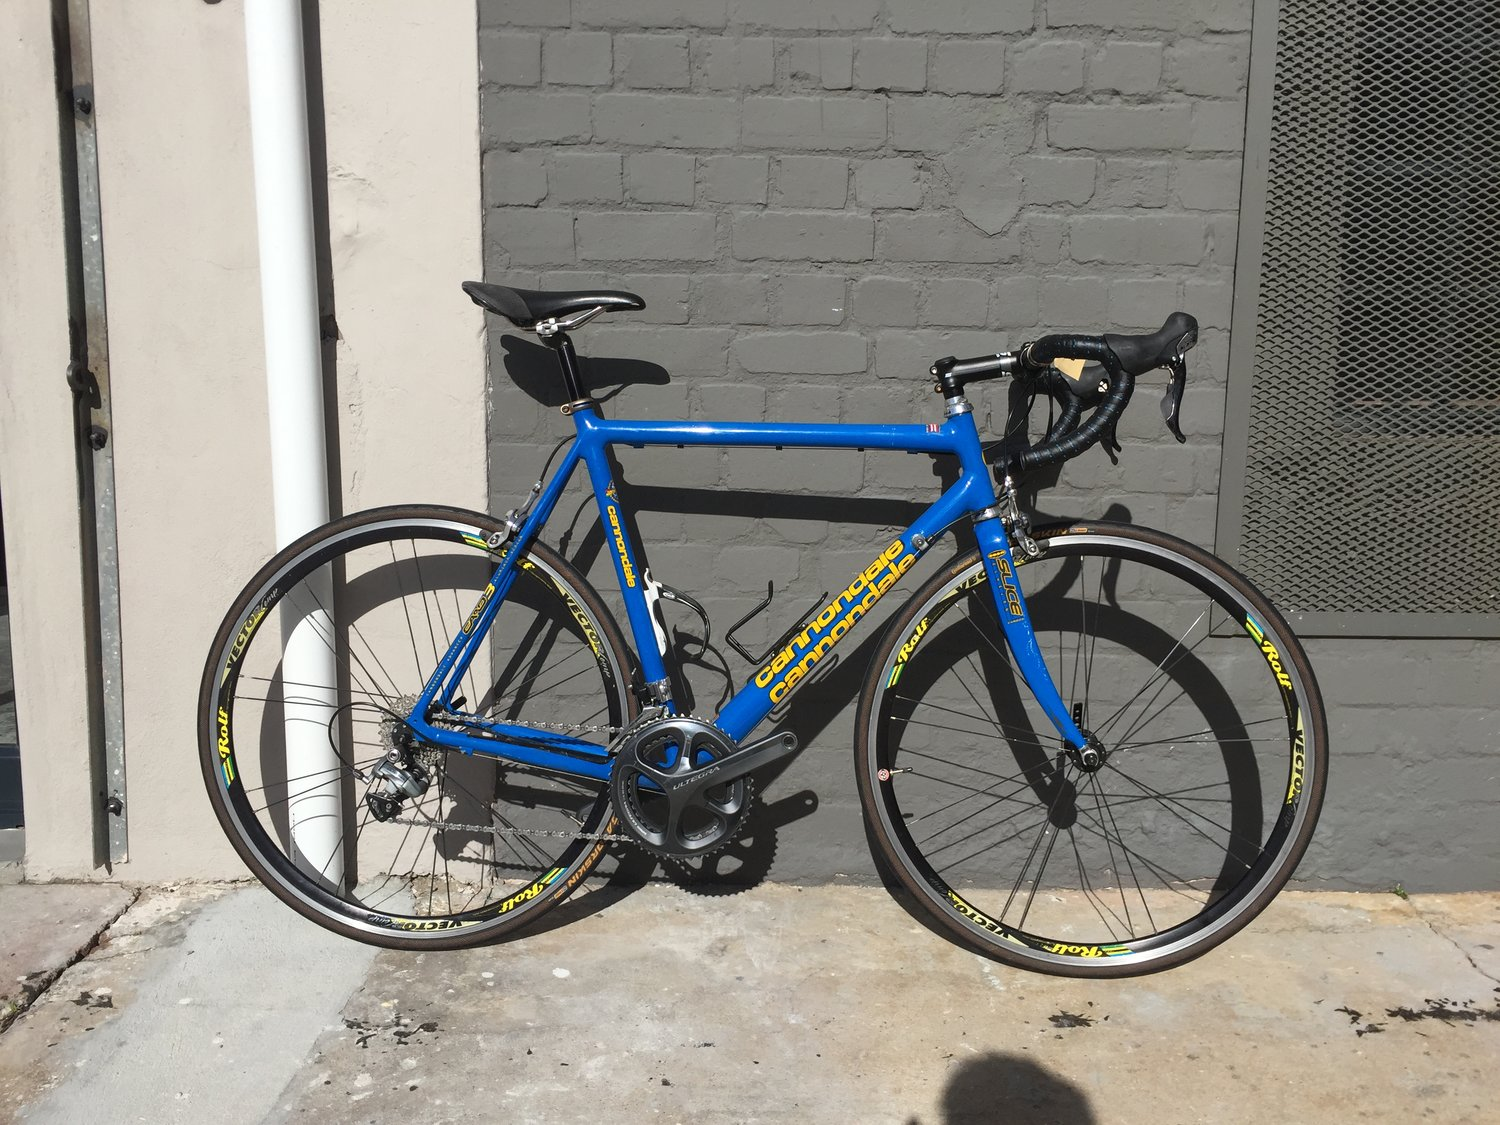 FOR SALE — Woodstock Cycleworks